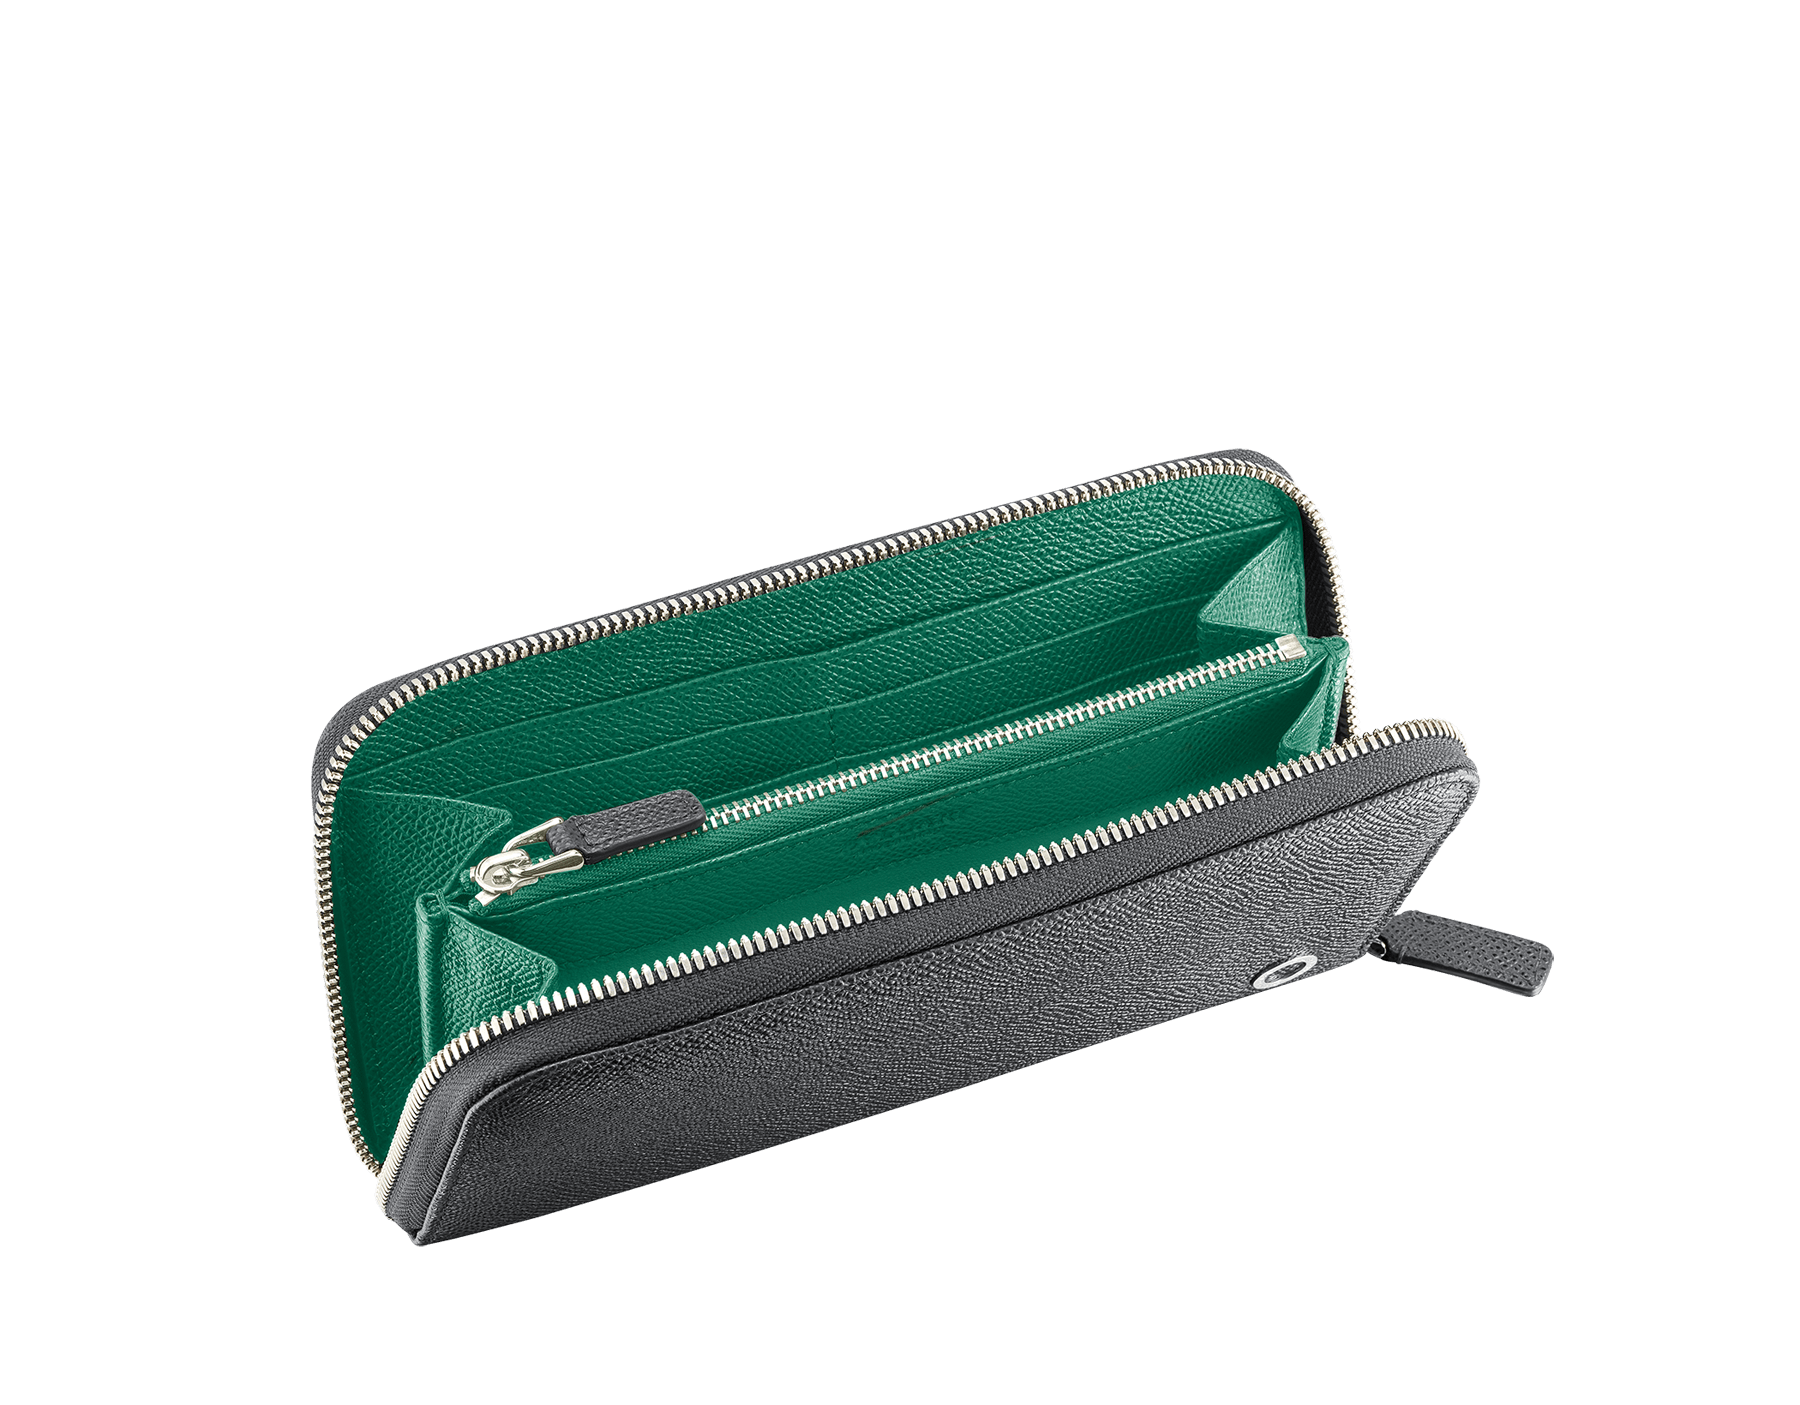 BVLGARI BVLGARI zipped wallet for men in charcoal diamond and emerald green grain calf leather and charcoal diamond nappa lining. Iconic logo décor in palladium plated brass. 289101 image 2